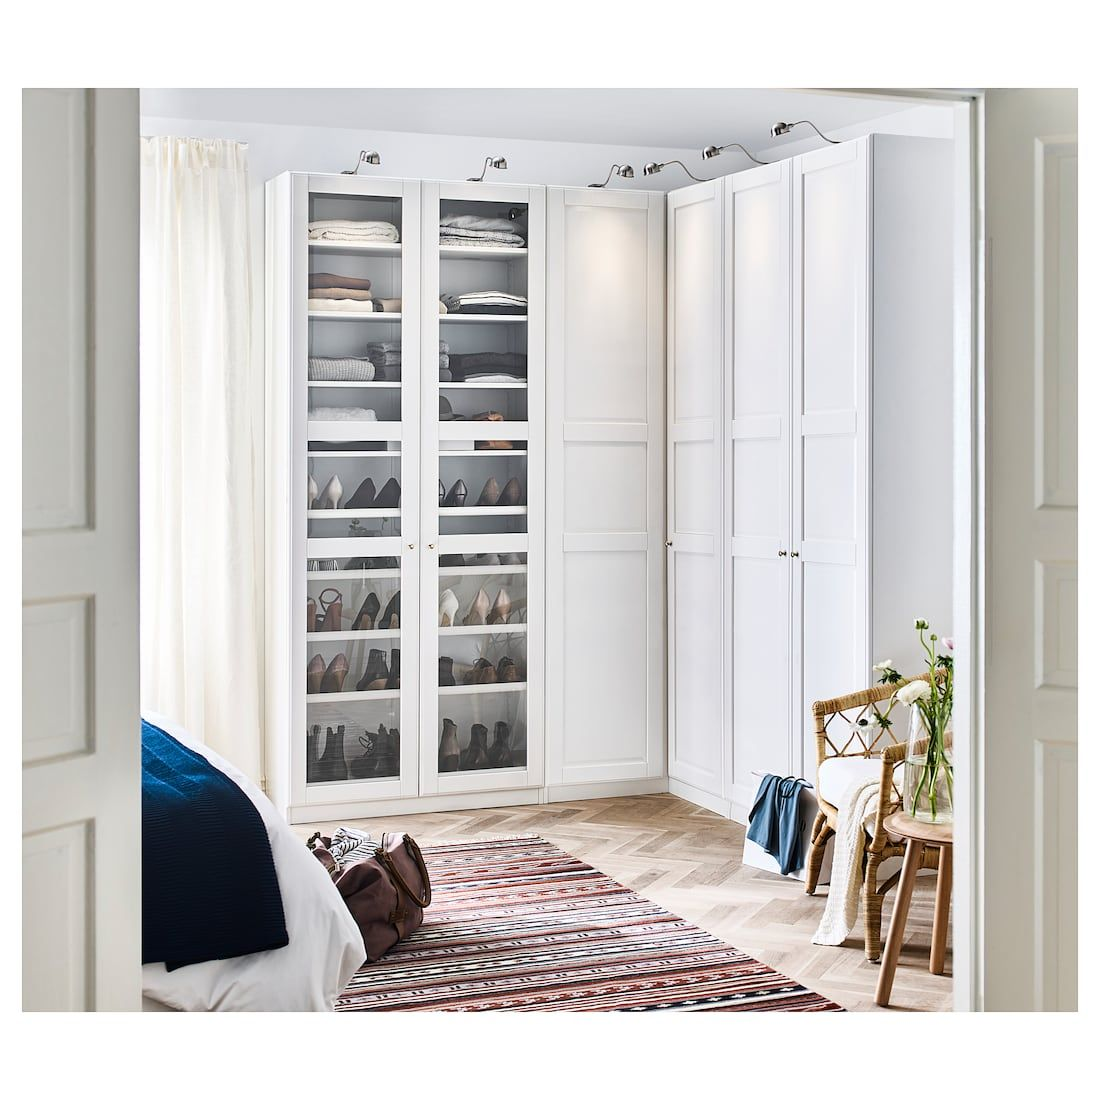 Pax Armoire D Angle Blanc Tyssedal Tyssedal Verre 210 188x236 Cm Penderie D Angle Idee Chambre Dressing Chambre